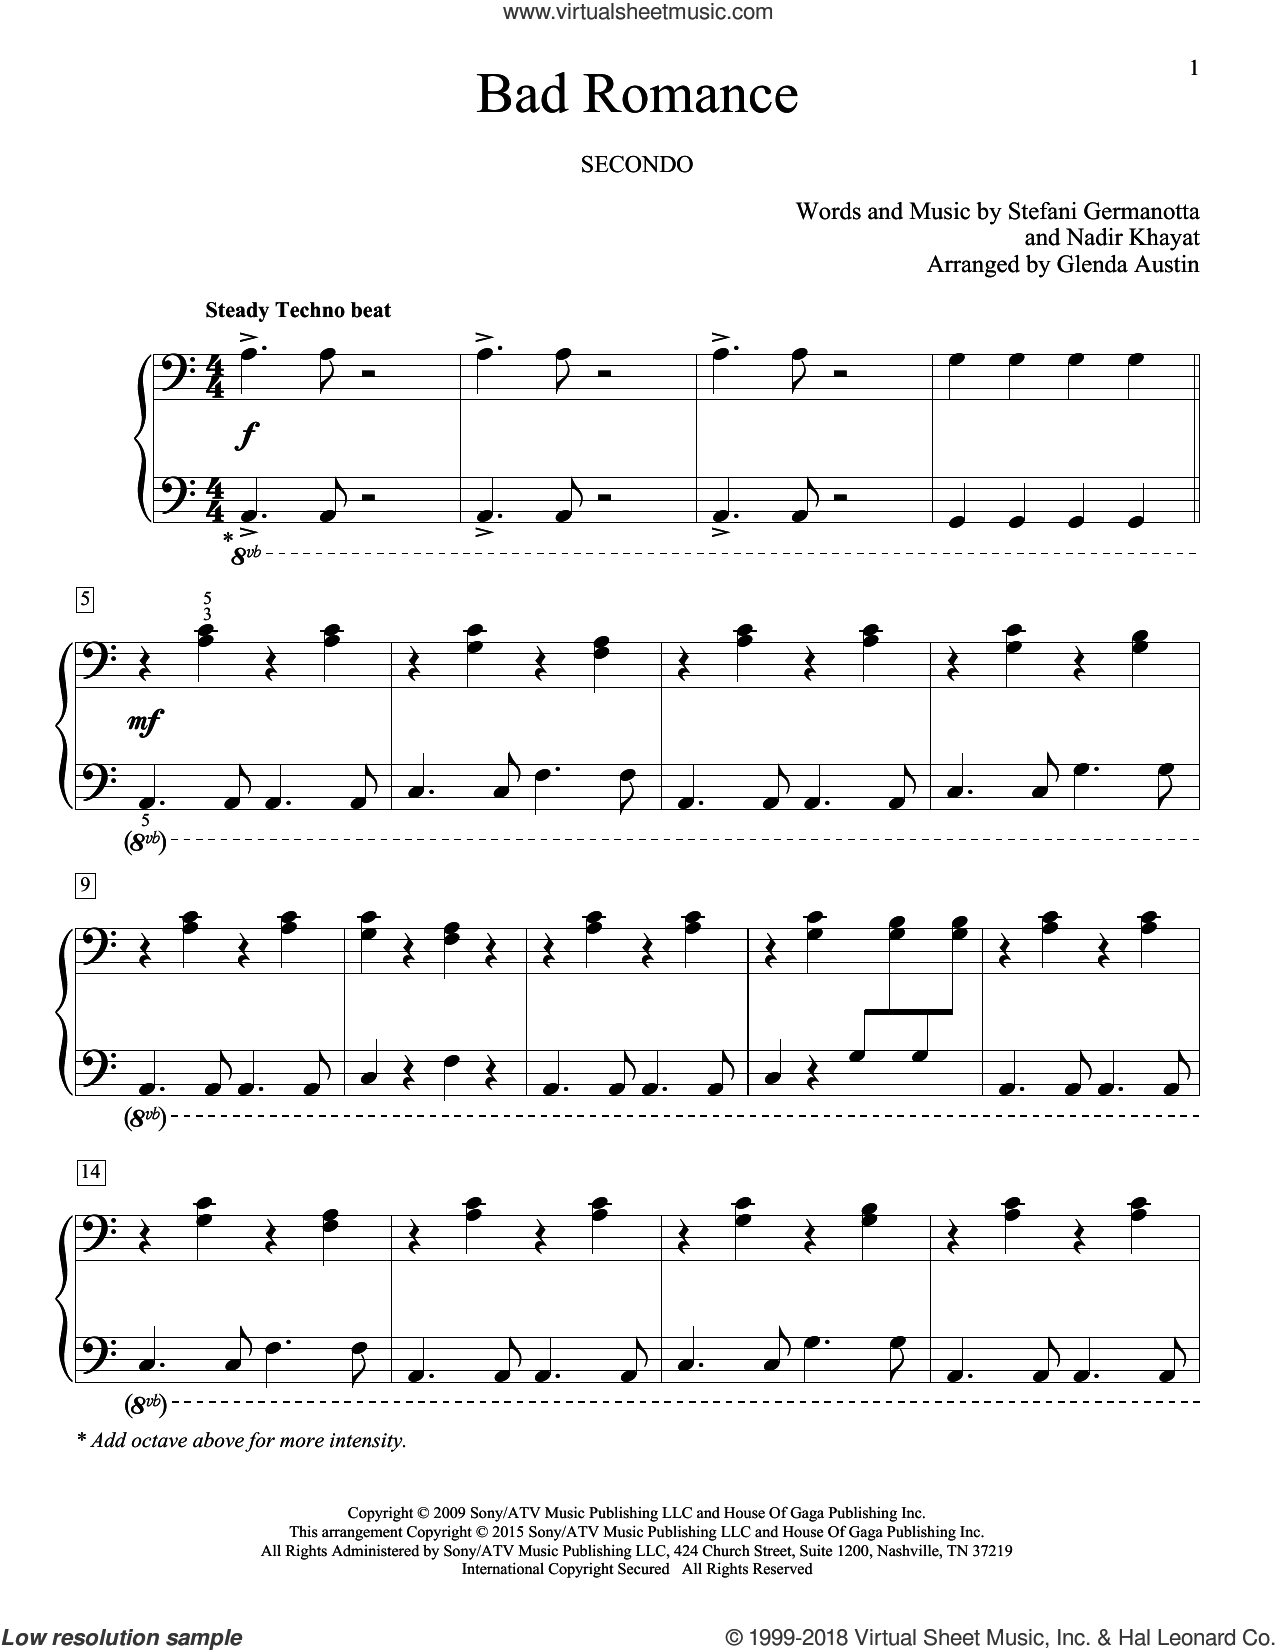 Bad Romance sheet music for piano four hands by Lady Gaga, Glenda Austin, Carolyn Miller, Eric Baumgartner and Nadir Khayat, intermediate